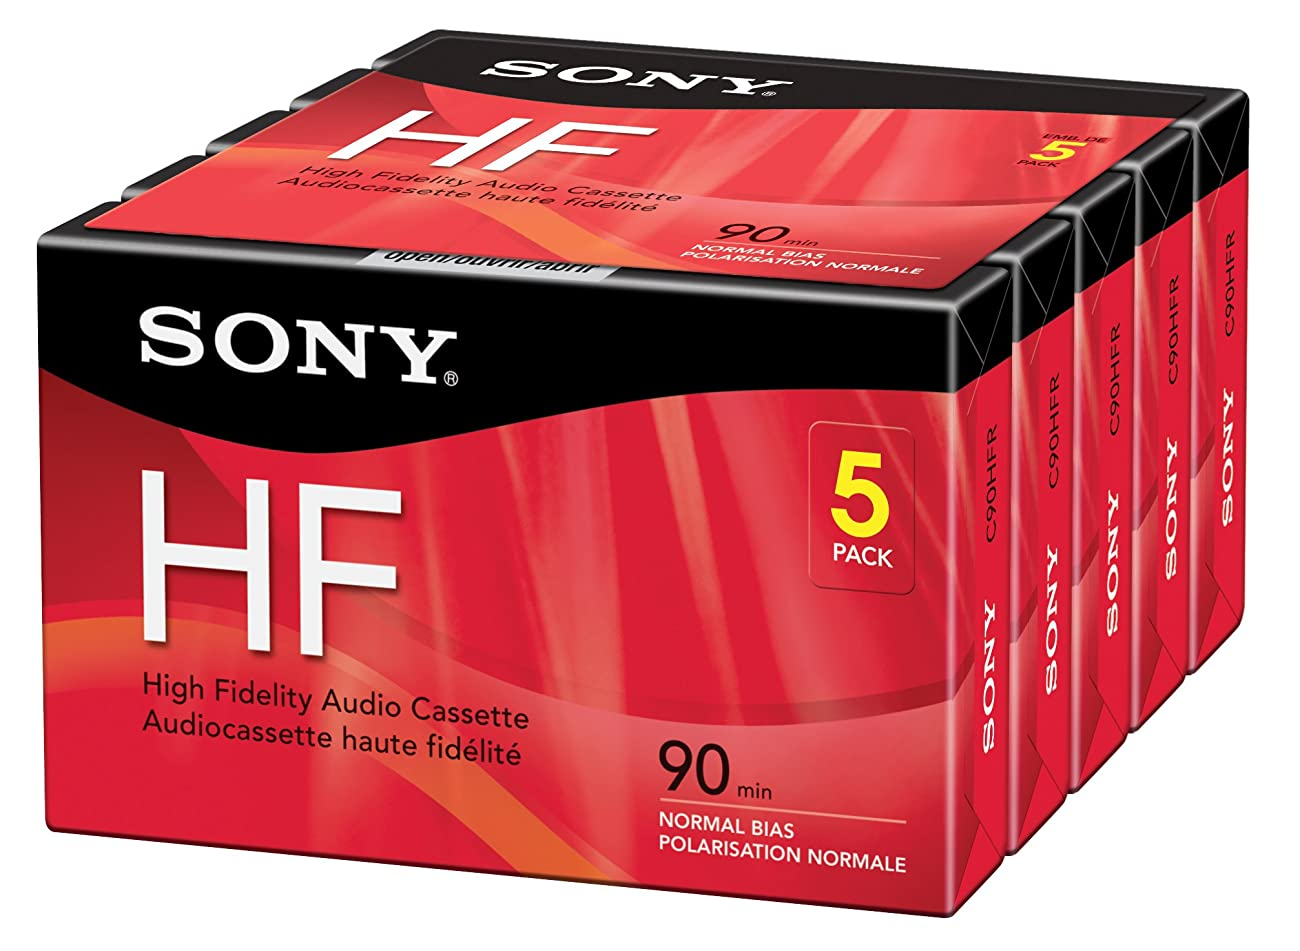 Sony 5C90HFR 90-Minute HF Cassette Recorders 5-Brick 0